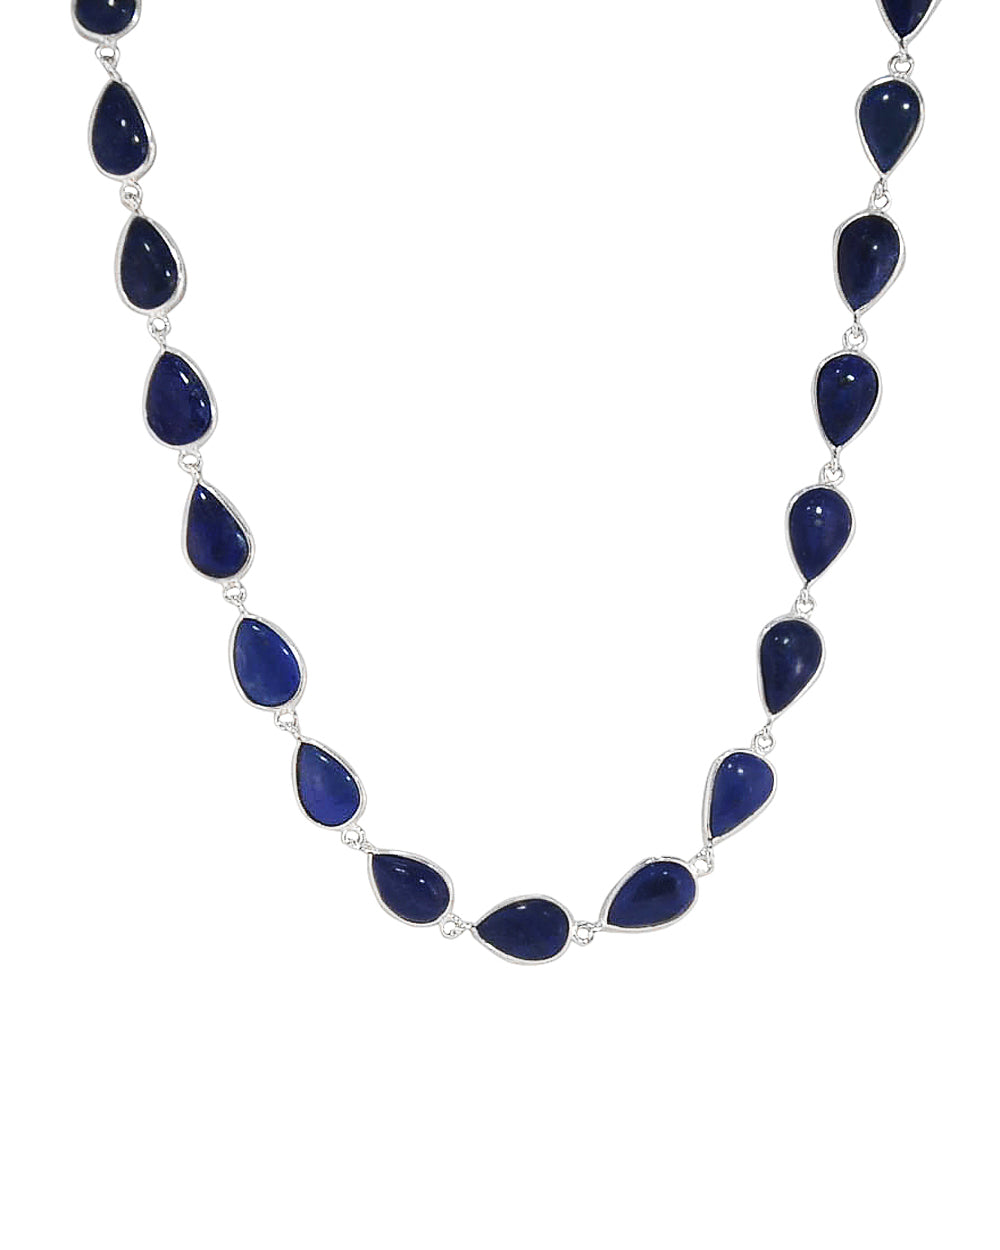 Splendor Lapis Lazuli Sterling Silver Station Necklace